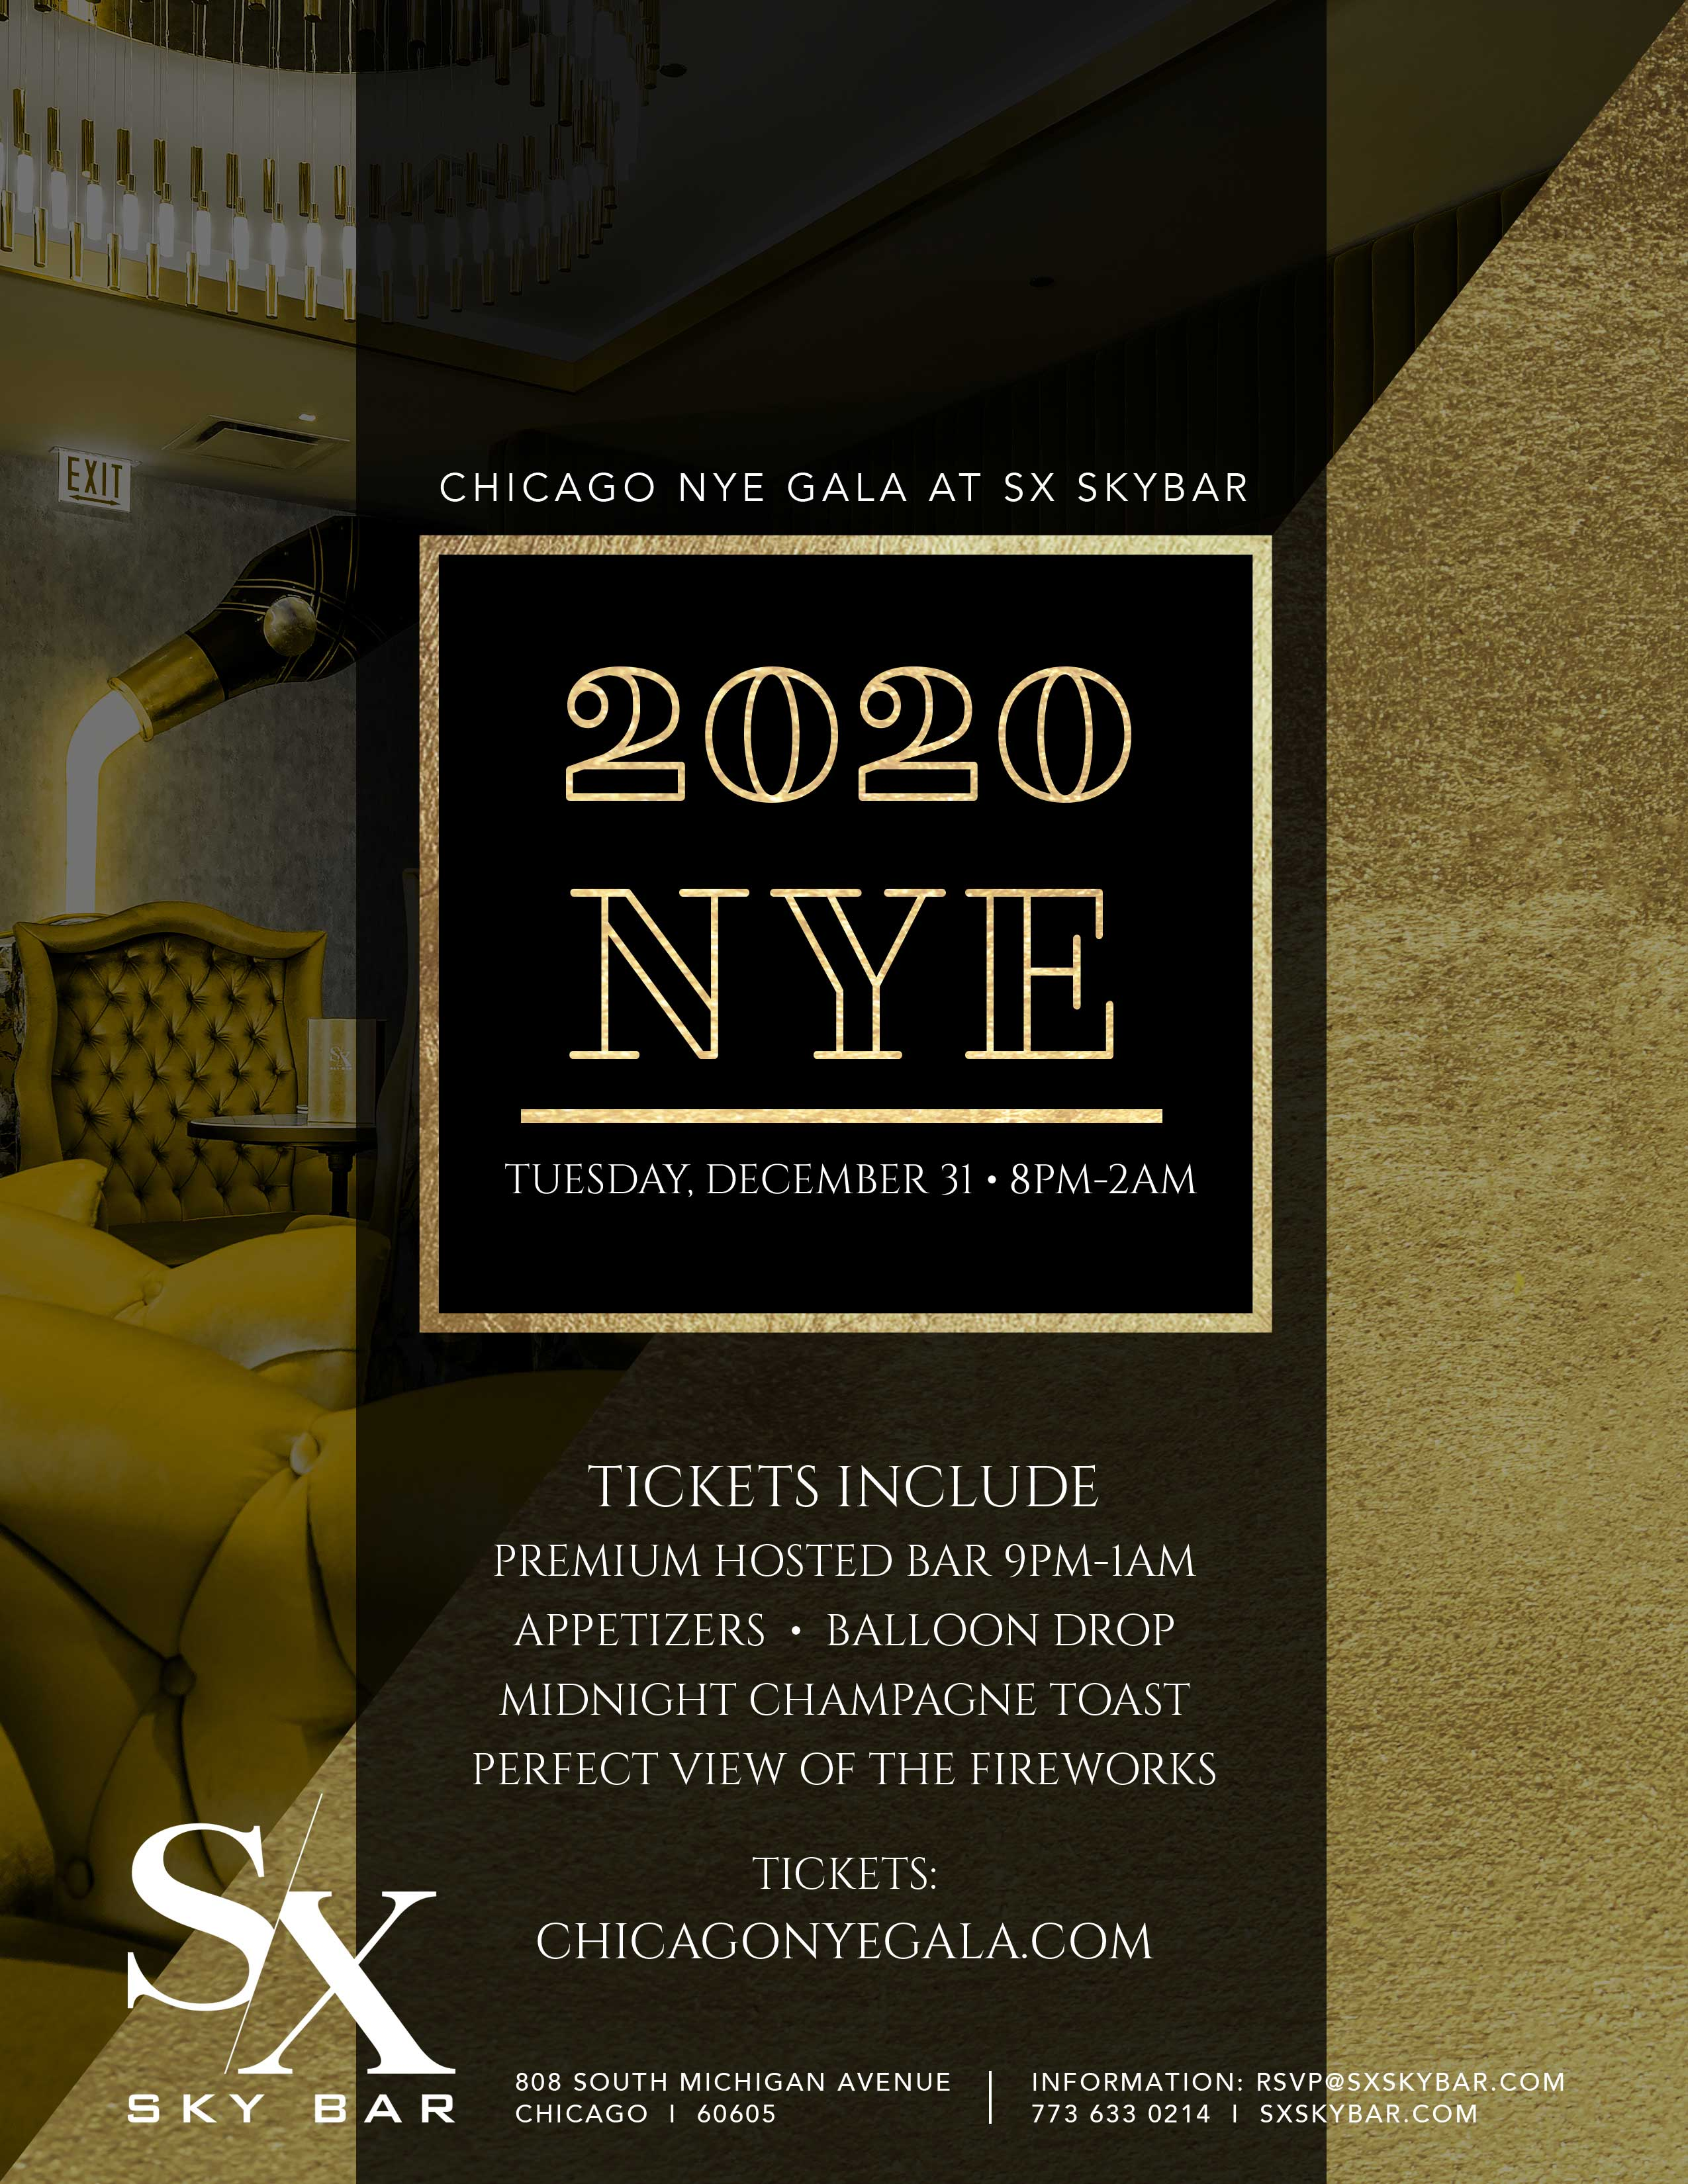 SX New Year's Eve Gala Party - Tickets include a premium hosted bar from 9pm-1am, appetizers, balloon drop, midnight champagne toast, and a perfect view of the fireworks!